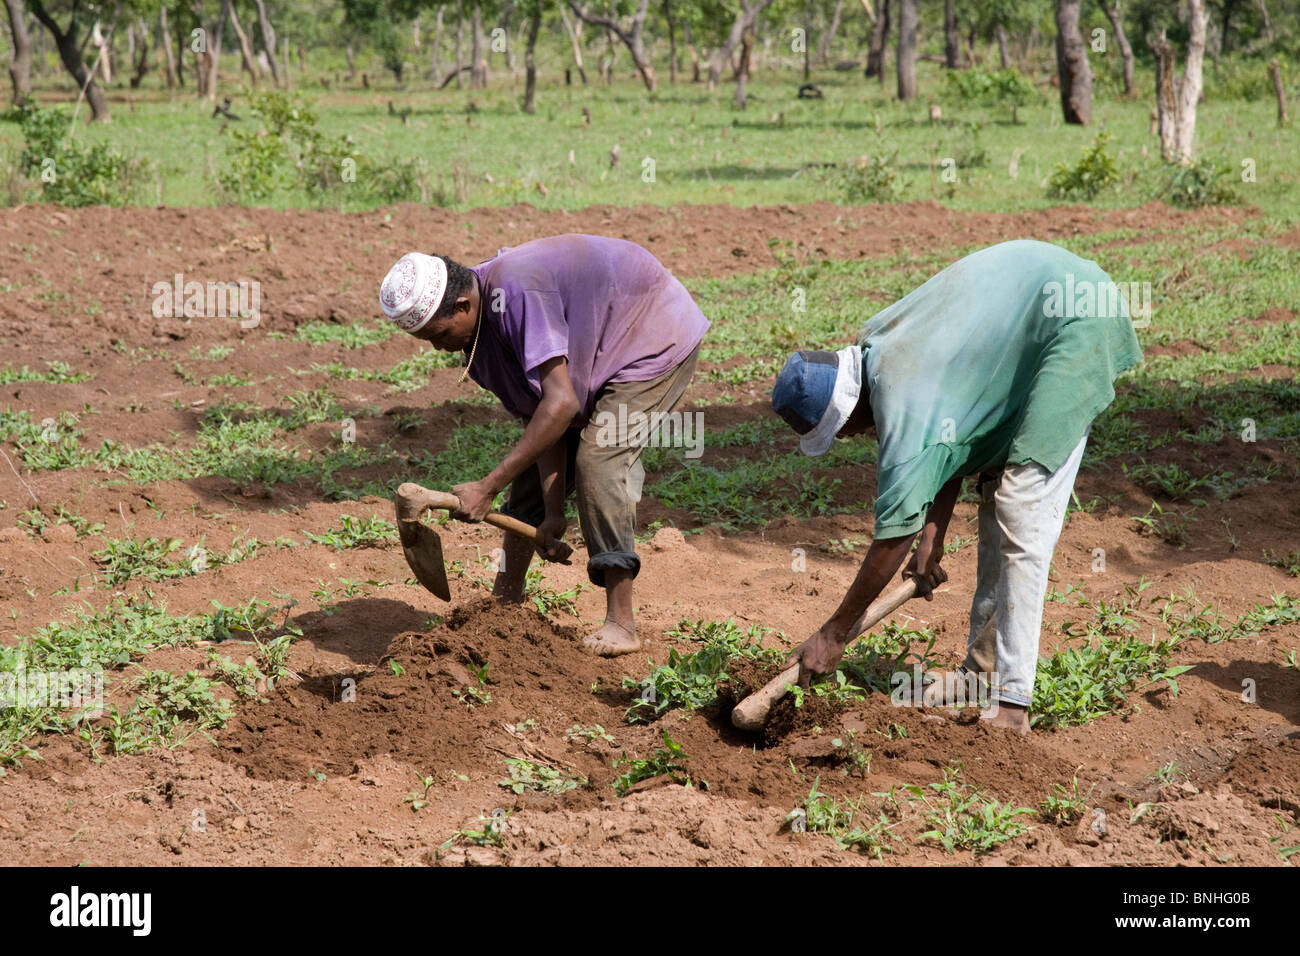 Young men from a Fulani family in a village in Ghana. They are hoeing the ground in preparation for the sowing of Stock Photo